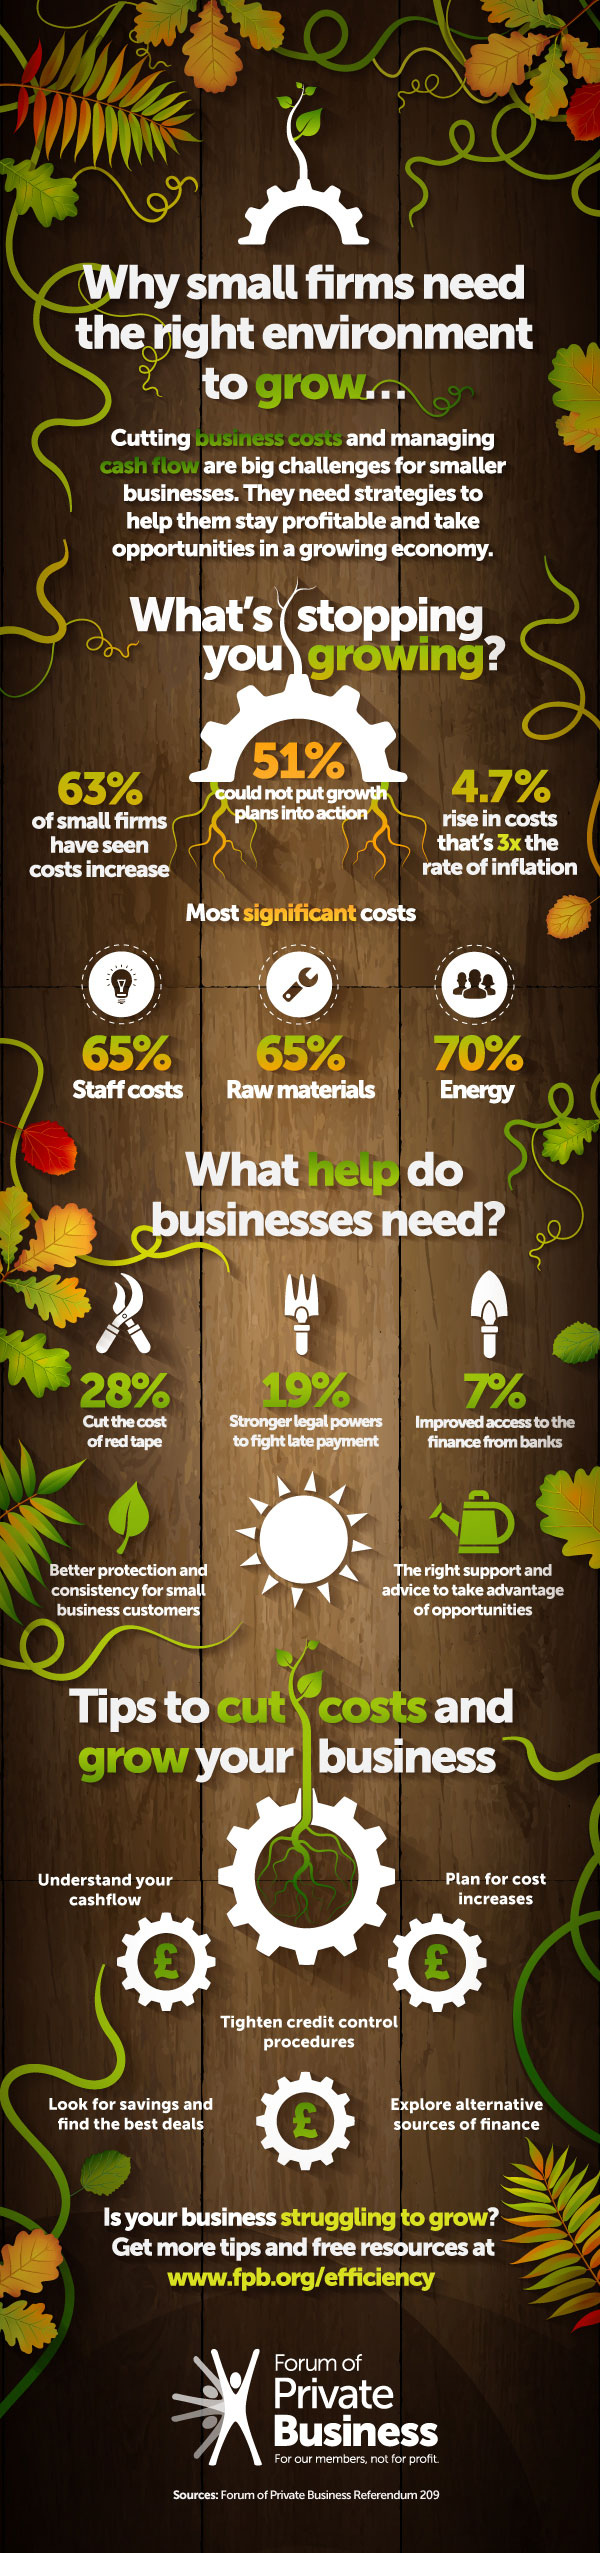 Infographic: Why small firms need the right environment to grow | Forum of Private Business